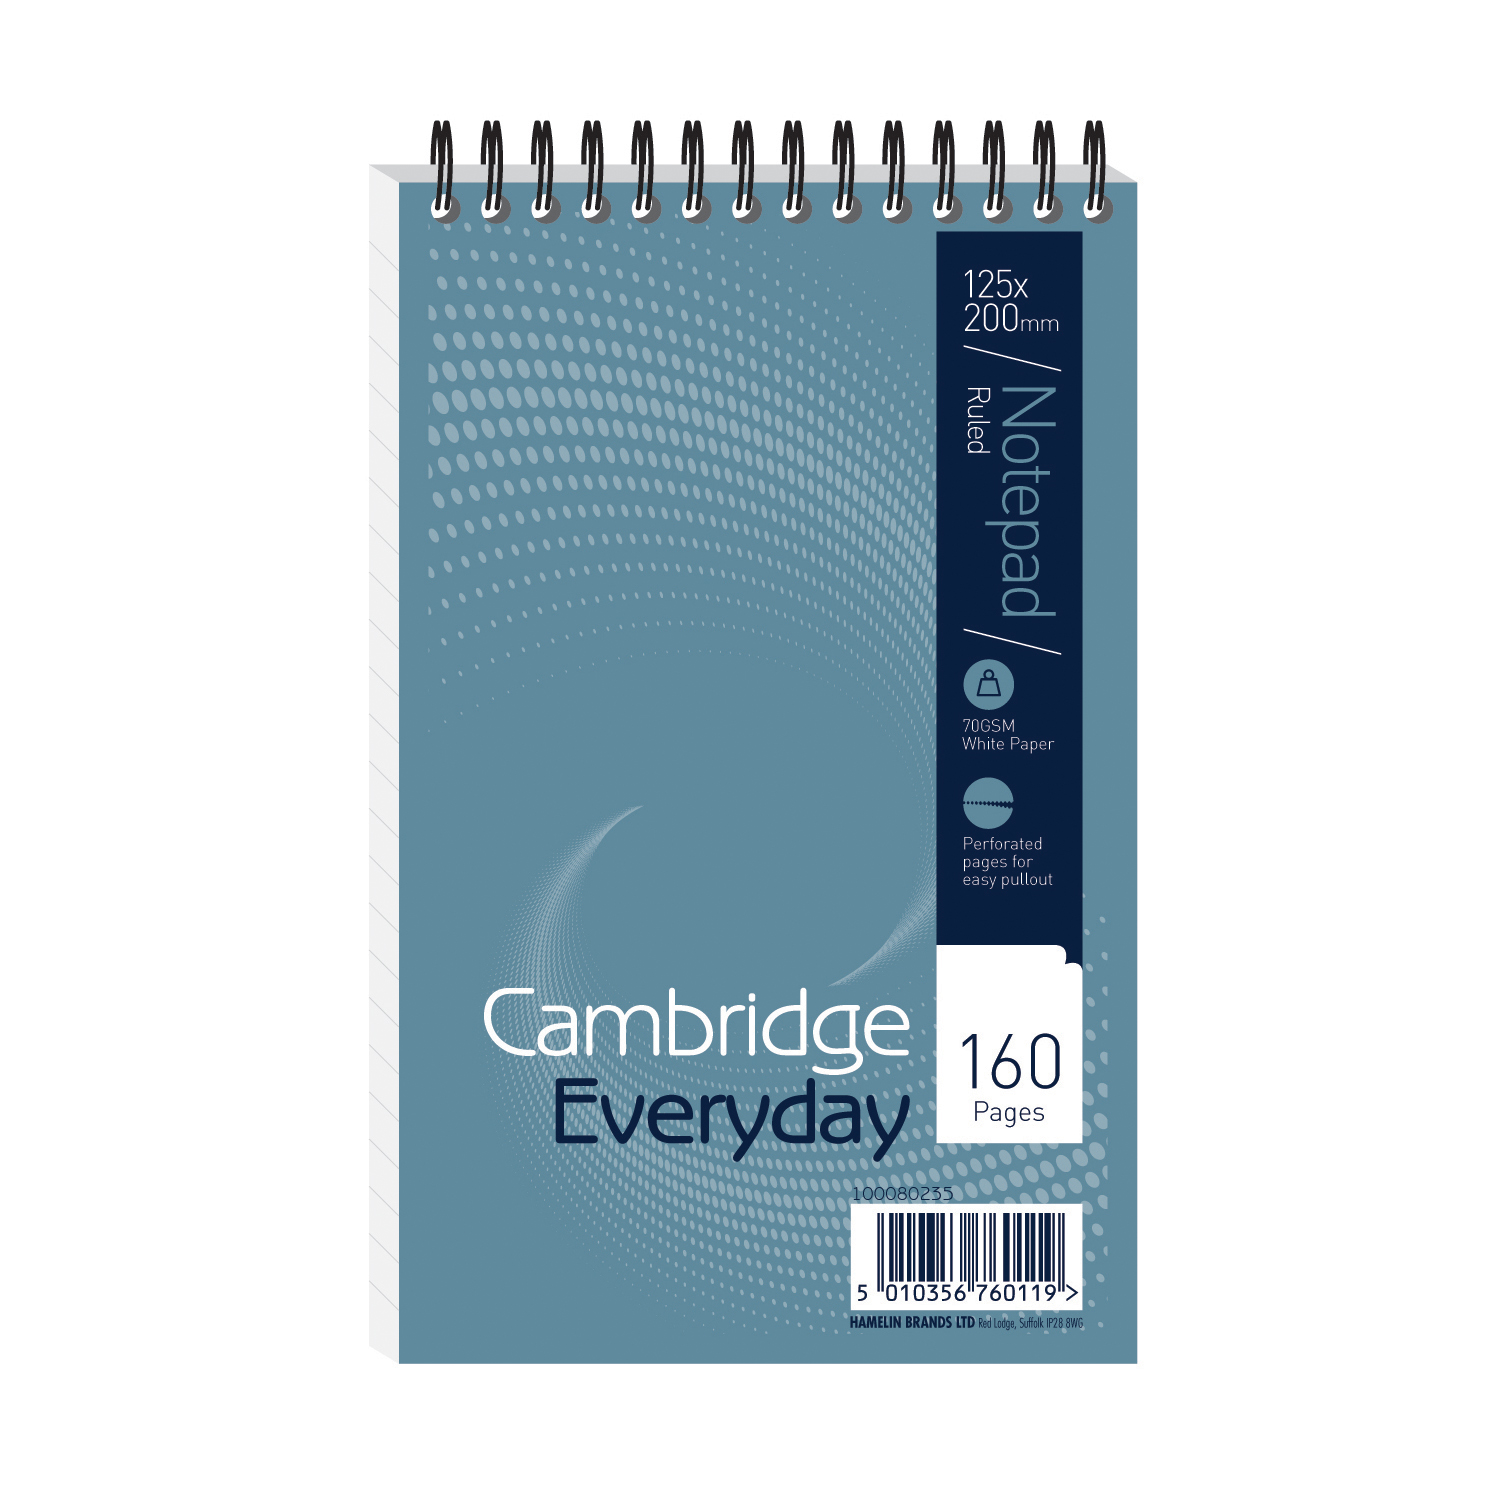 Spiral Note Books Cambridge Everyday Shorthand Pad Wbnd 70gsm Ruled Perforated 160pp 125x200mm Blue Ref 100080235 Pack 10